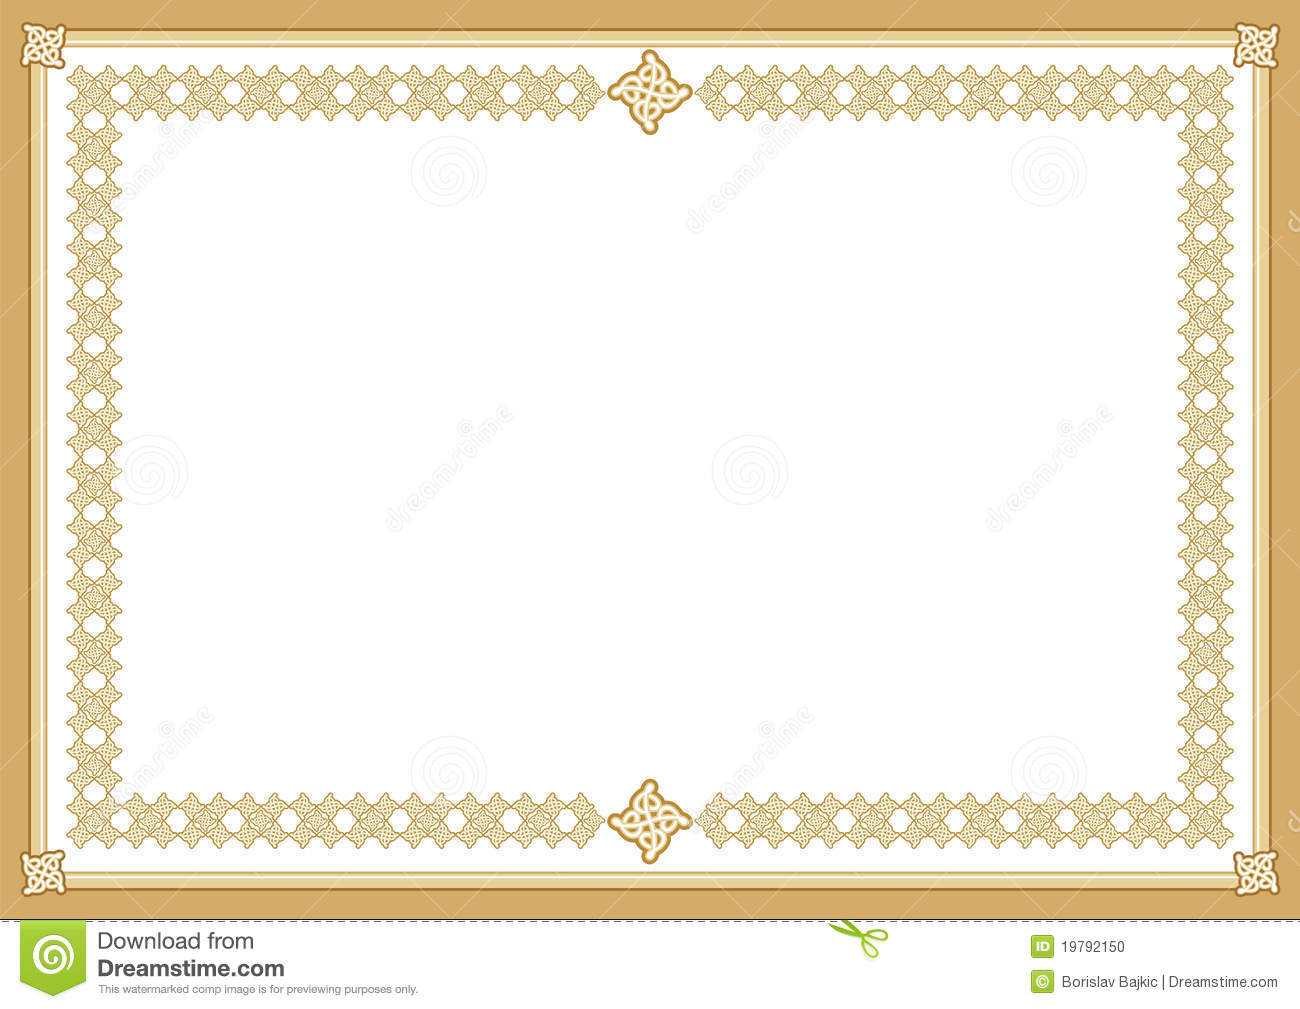 Certificate Stock Vector. Illustration Of Awards, Coloured Regarding Award Certificate Border Template